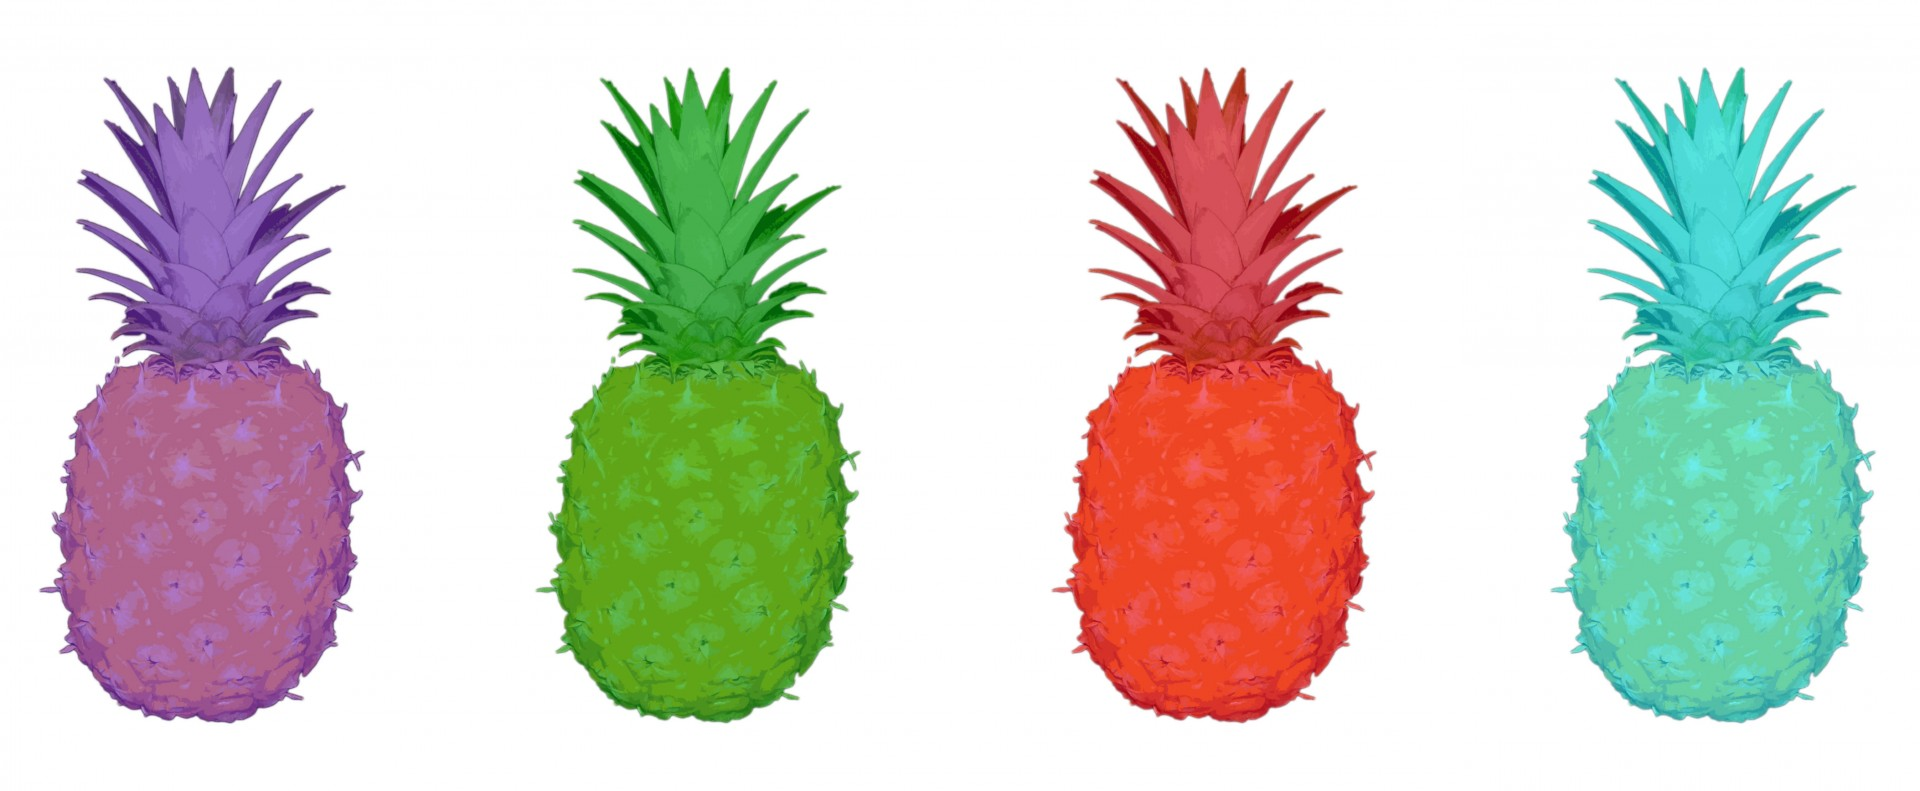 Blue clipart pineapple Pineapples Photo Pineapples Domain Public